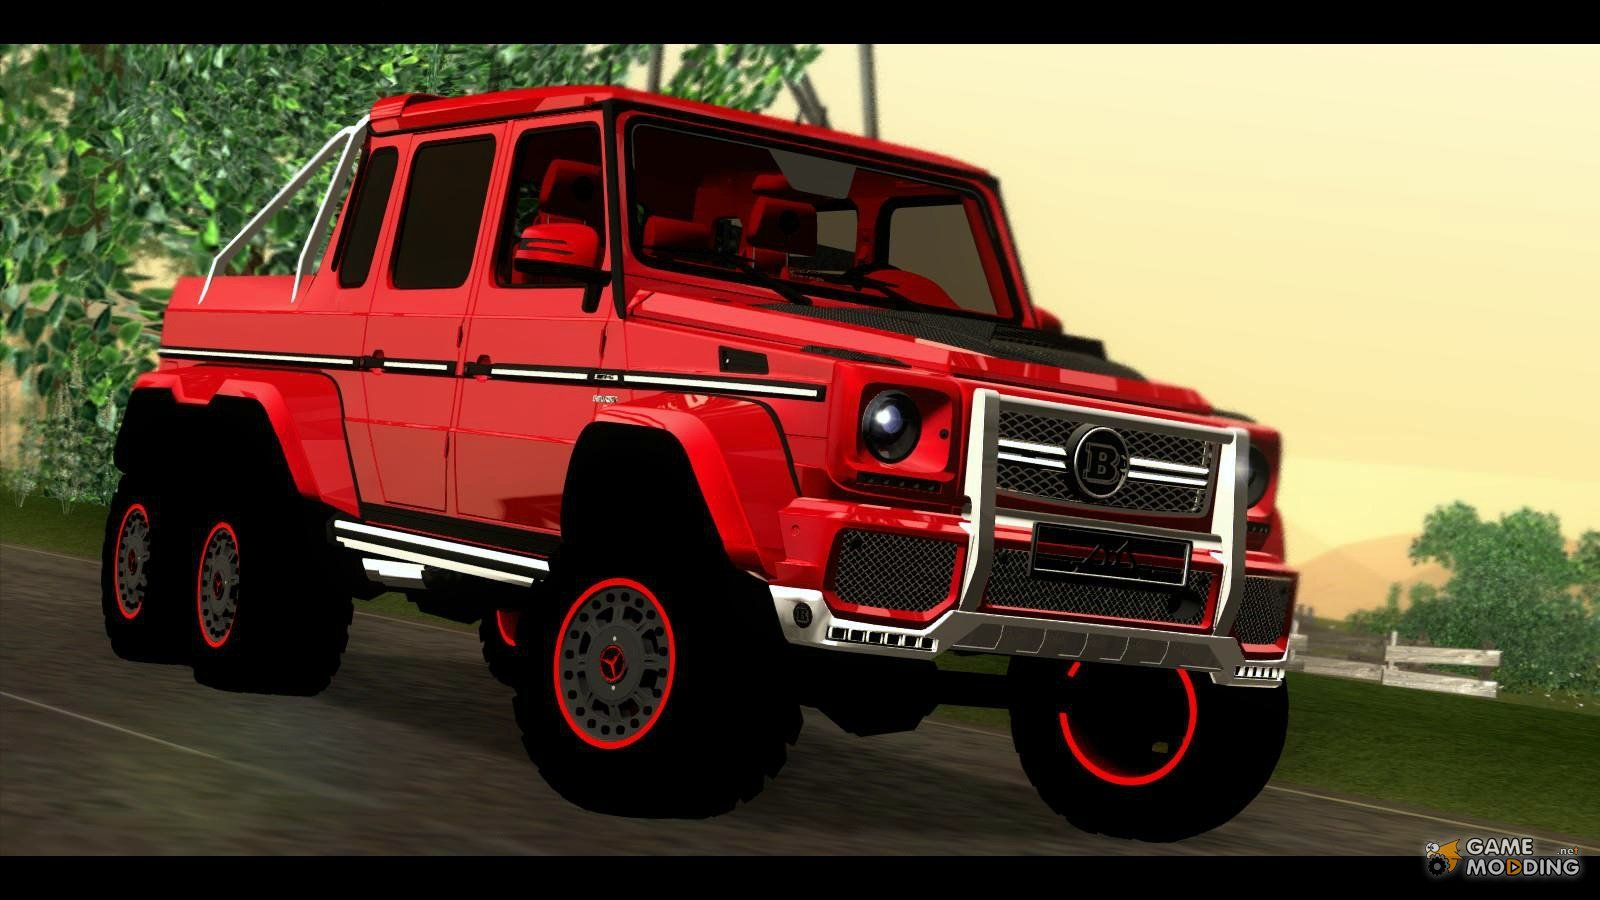 Brabus 700 mercedes benz g63 amg 6x6 gta san andreas for Camioneta mercedes benz